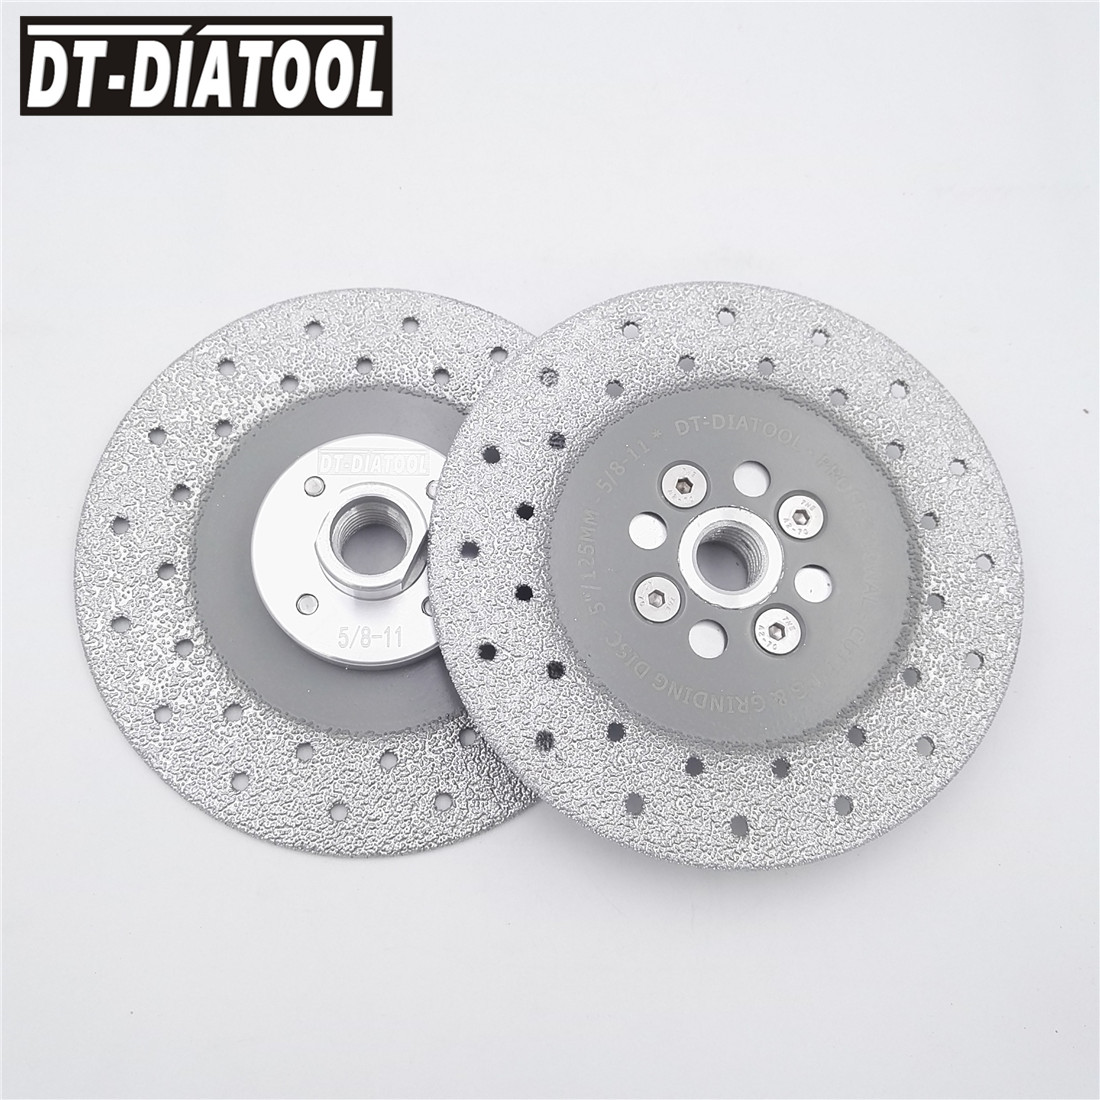 2pcs/units 5 Double Sided Vacuum Brazed Diamond Cutting wheel Grinding Disc 5/8-11 Flange Diameter 125MM for Shaping stone 5 11